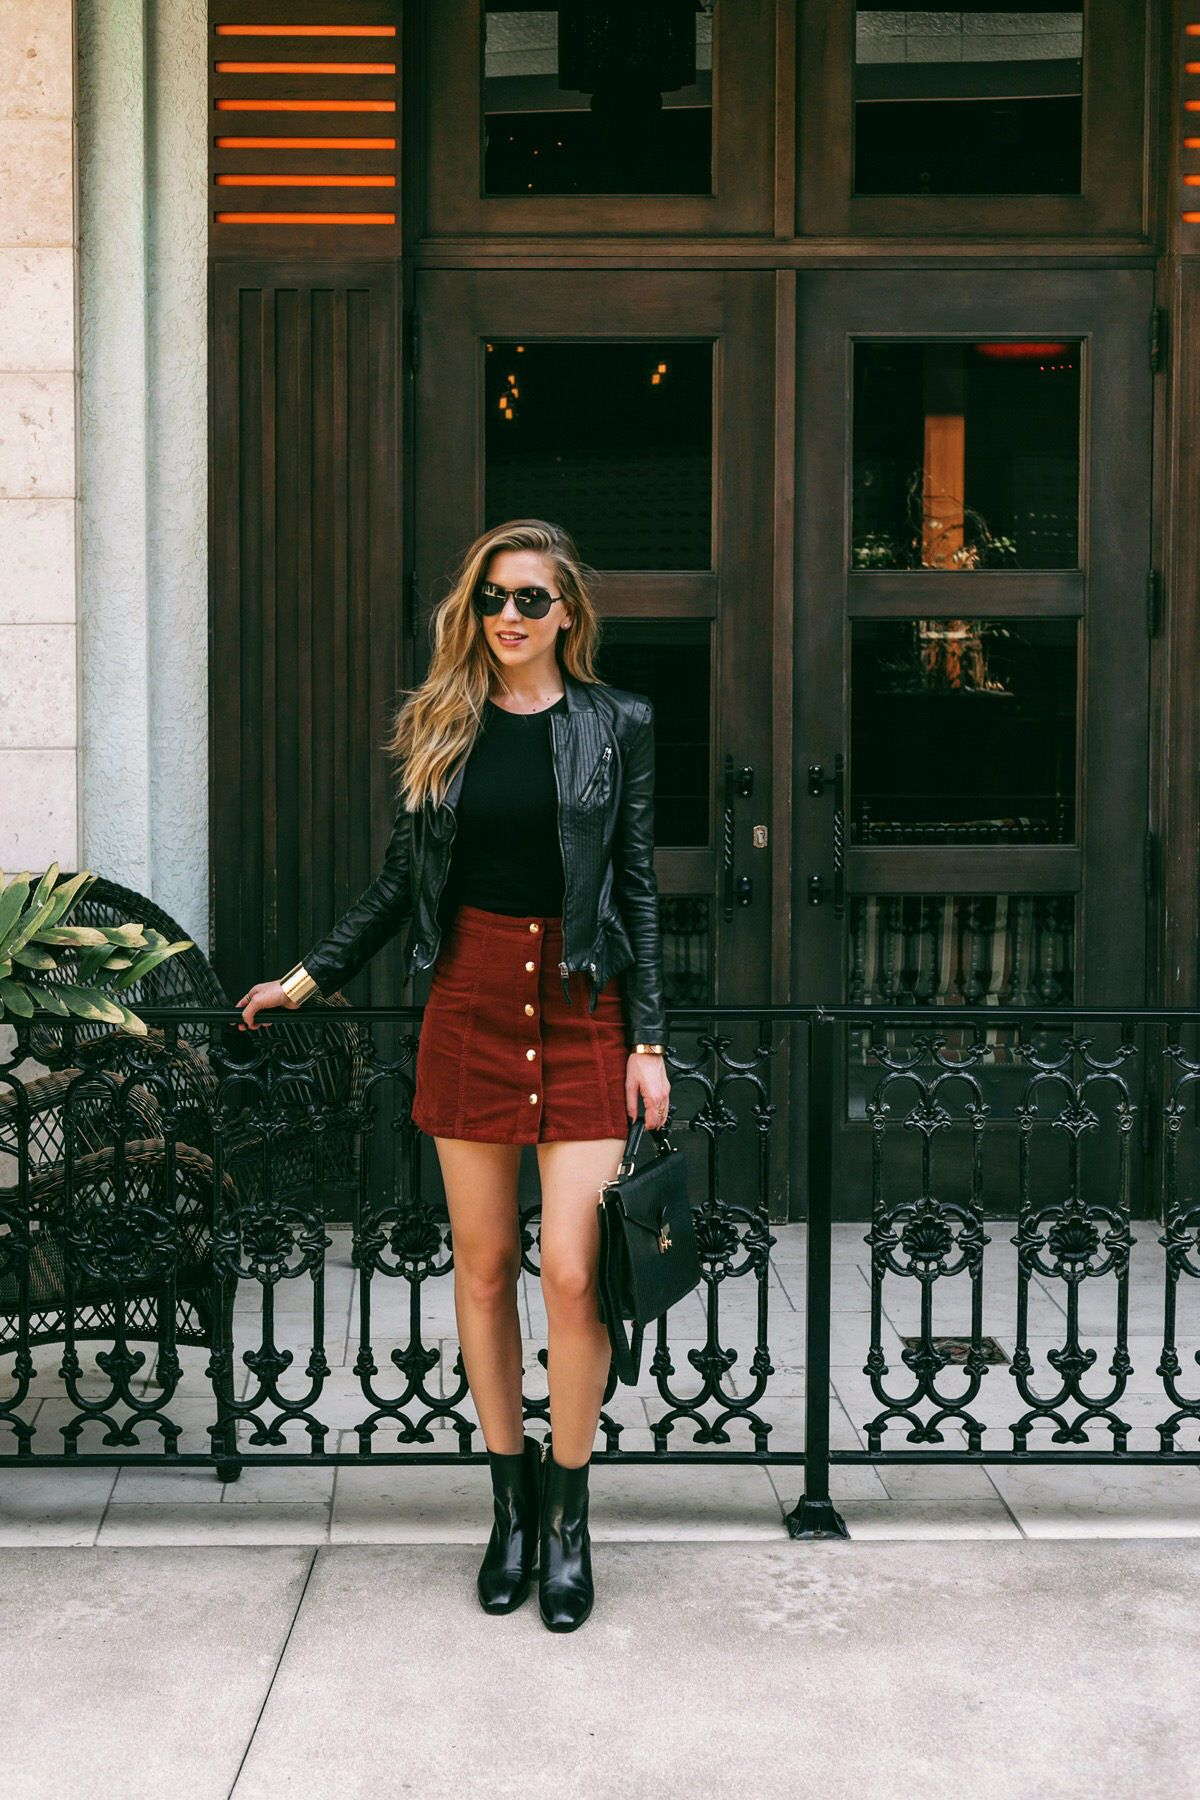 Casual Outfits To Try For Fall When You Have Nothing to Wear Just The Design d996c5ea1da3f